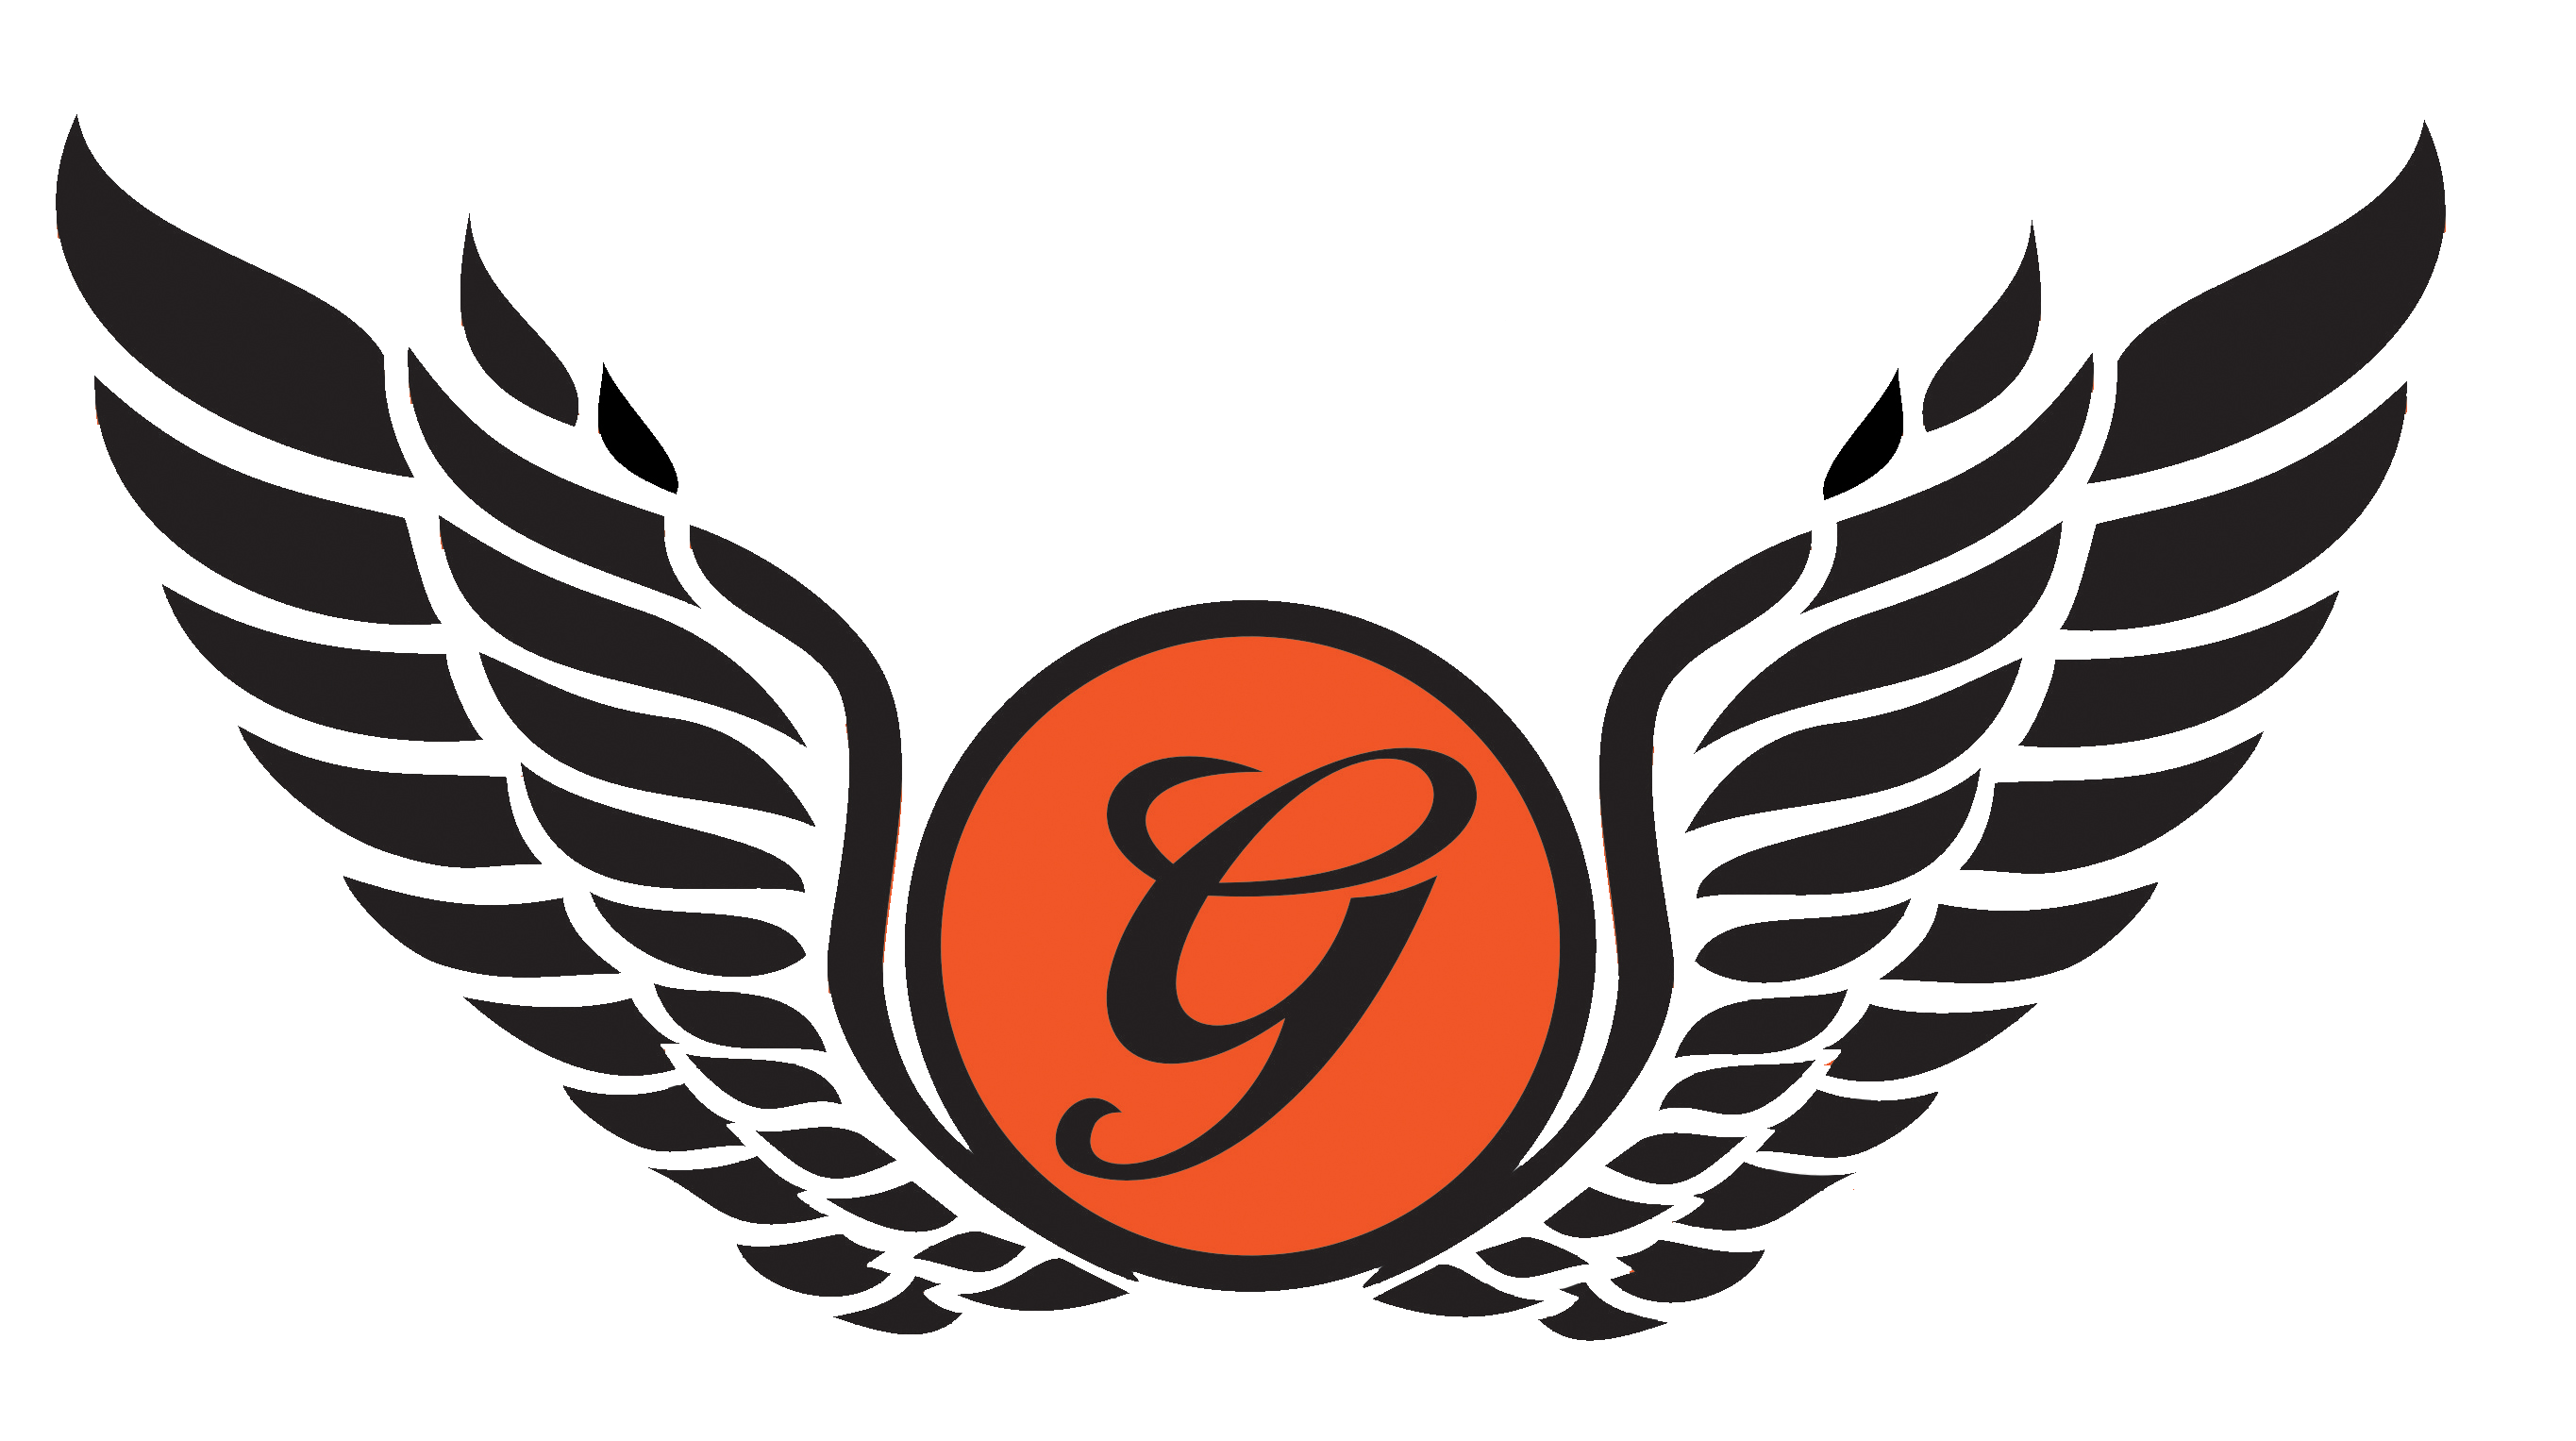 Wings logo clipart vector library stock Wing Logo - ClipArt Best vector library stock